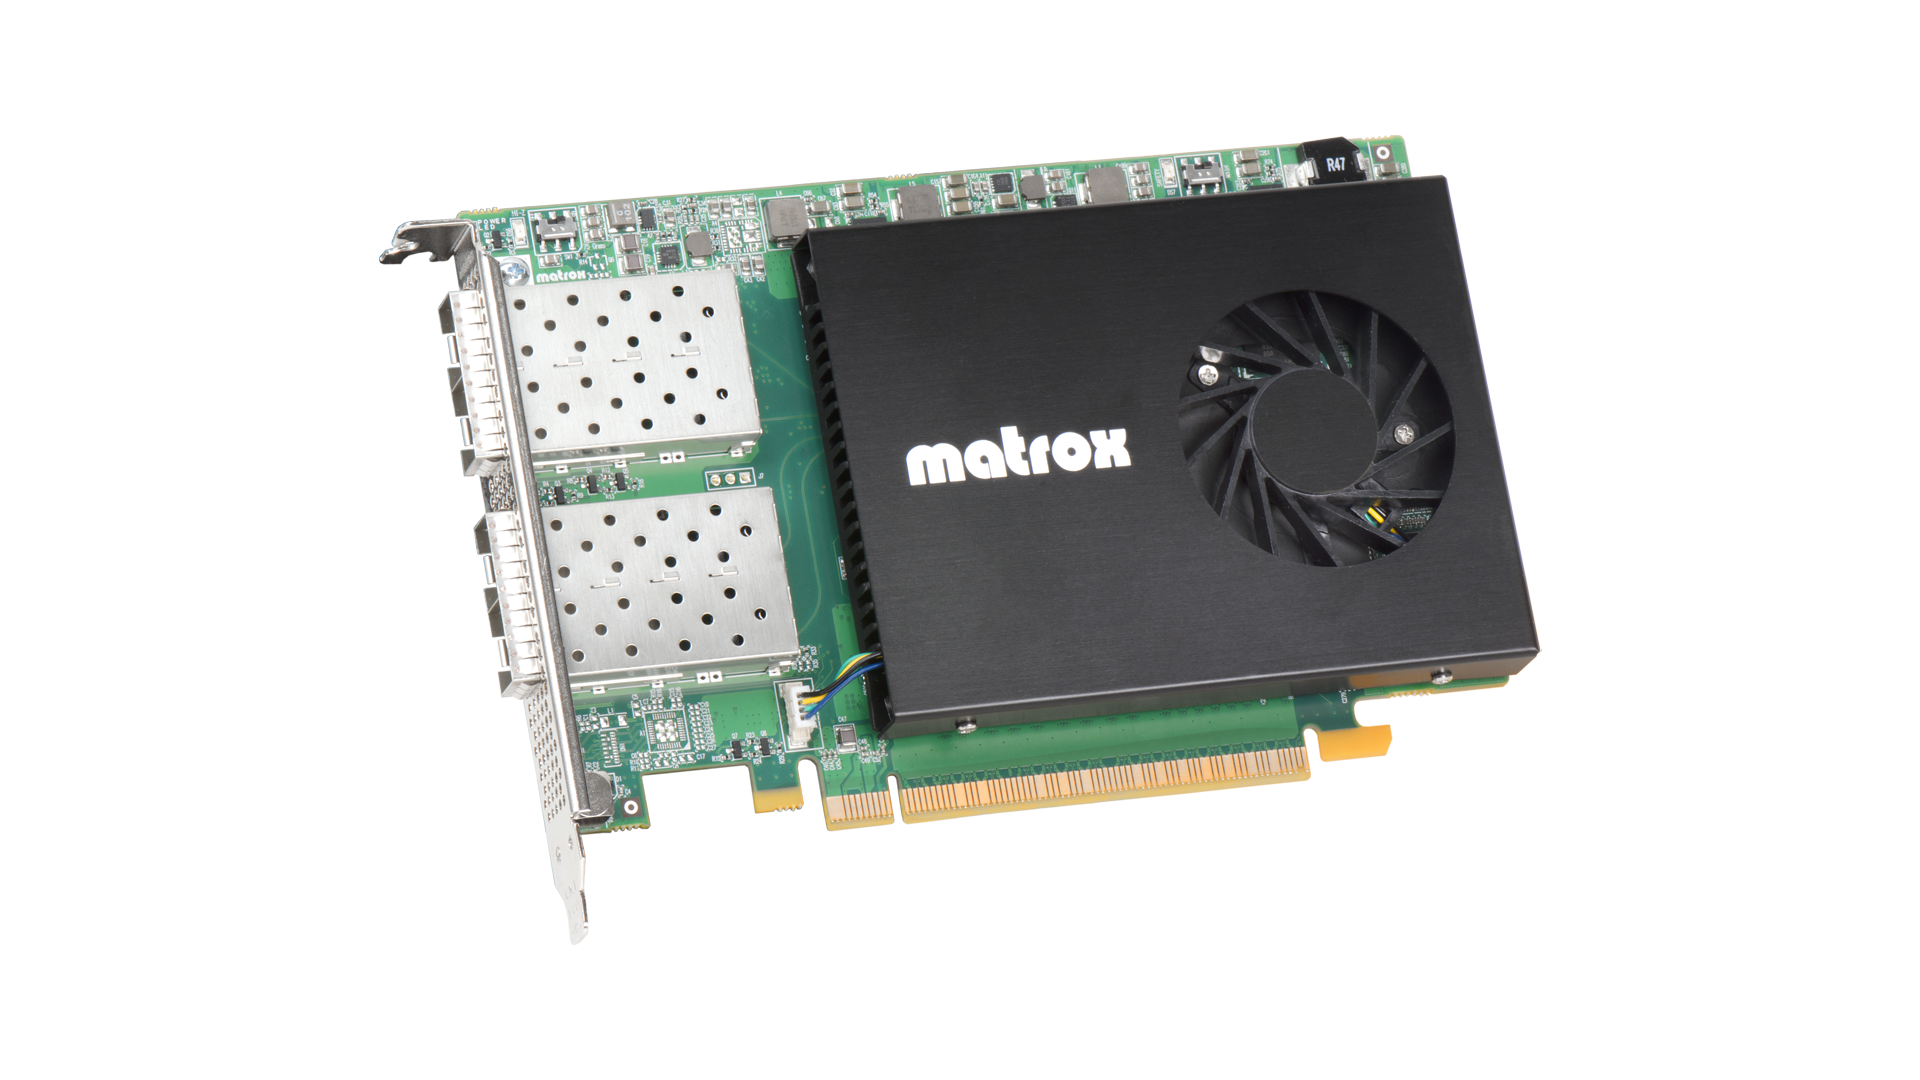 Matrox X.mio5 Q25 ST 2110 NIC Card with Hardware Processing